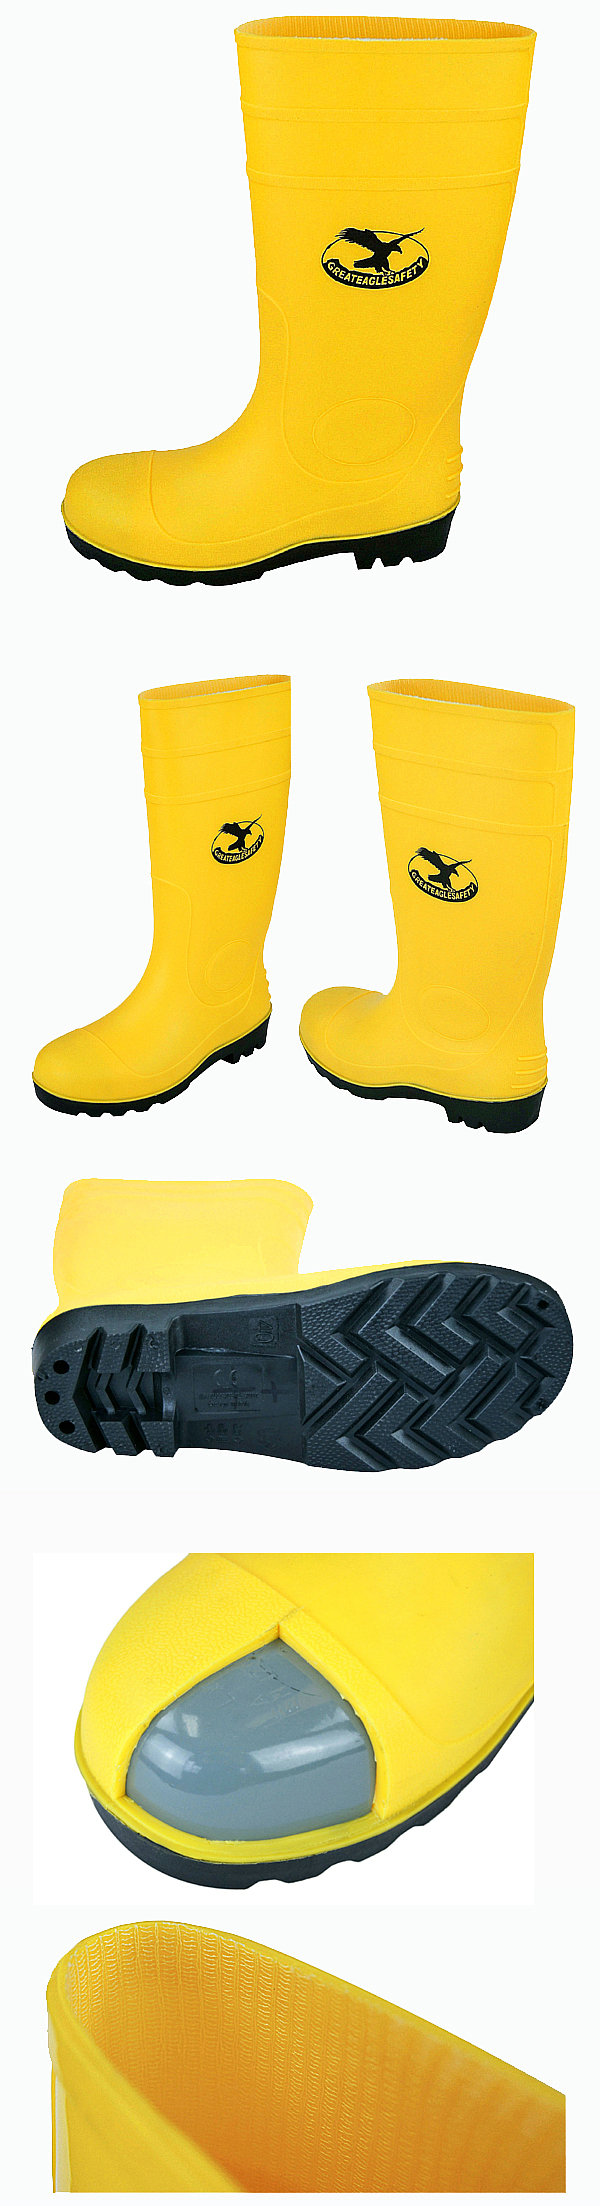 Steel Pvc Safety Gumboots